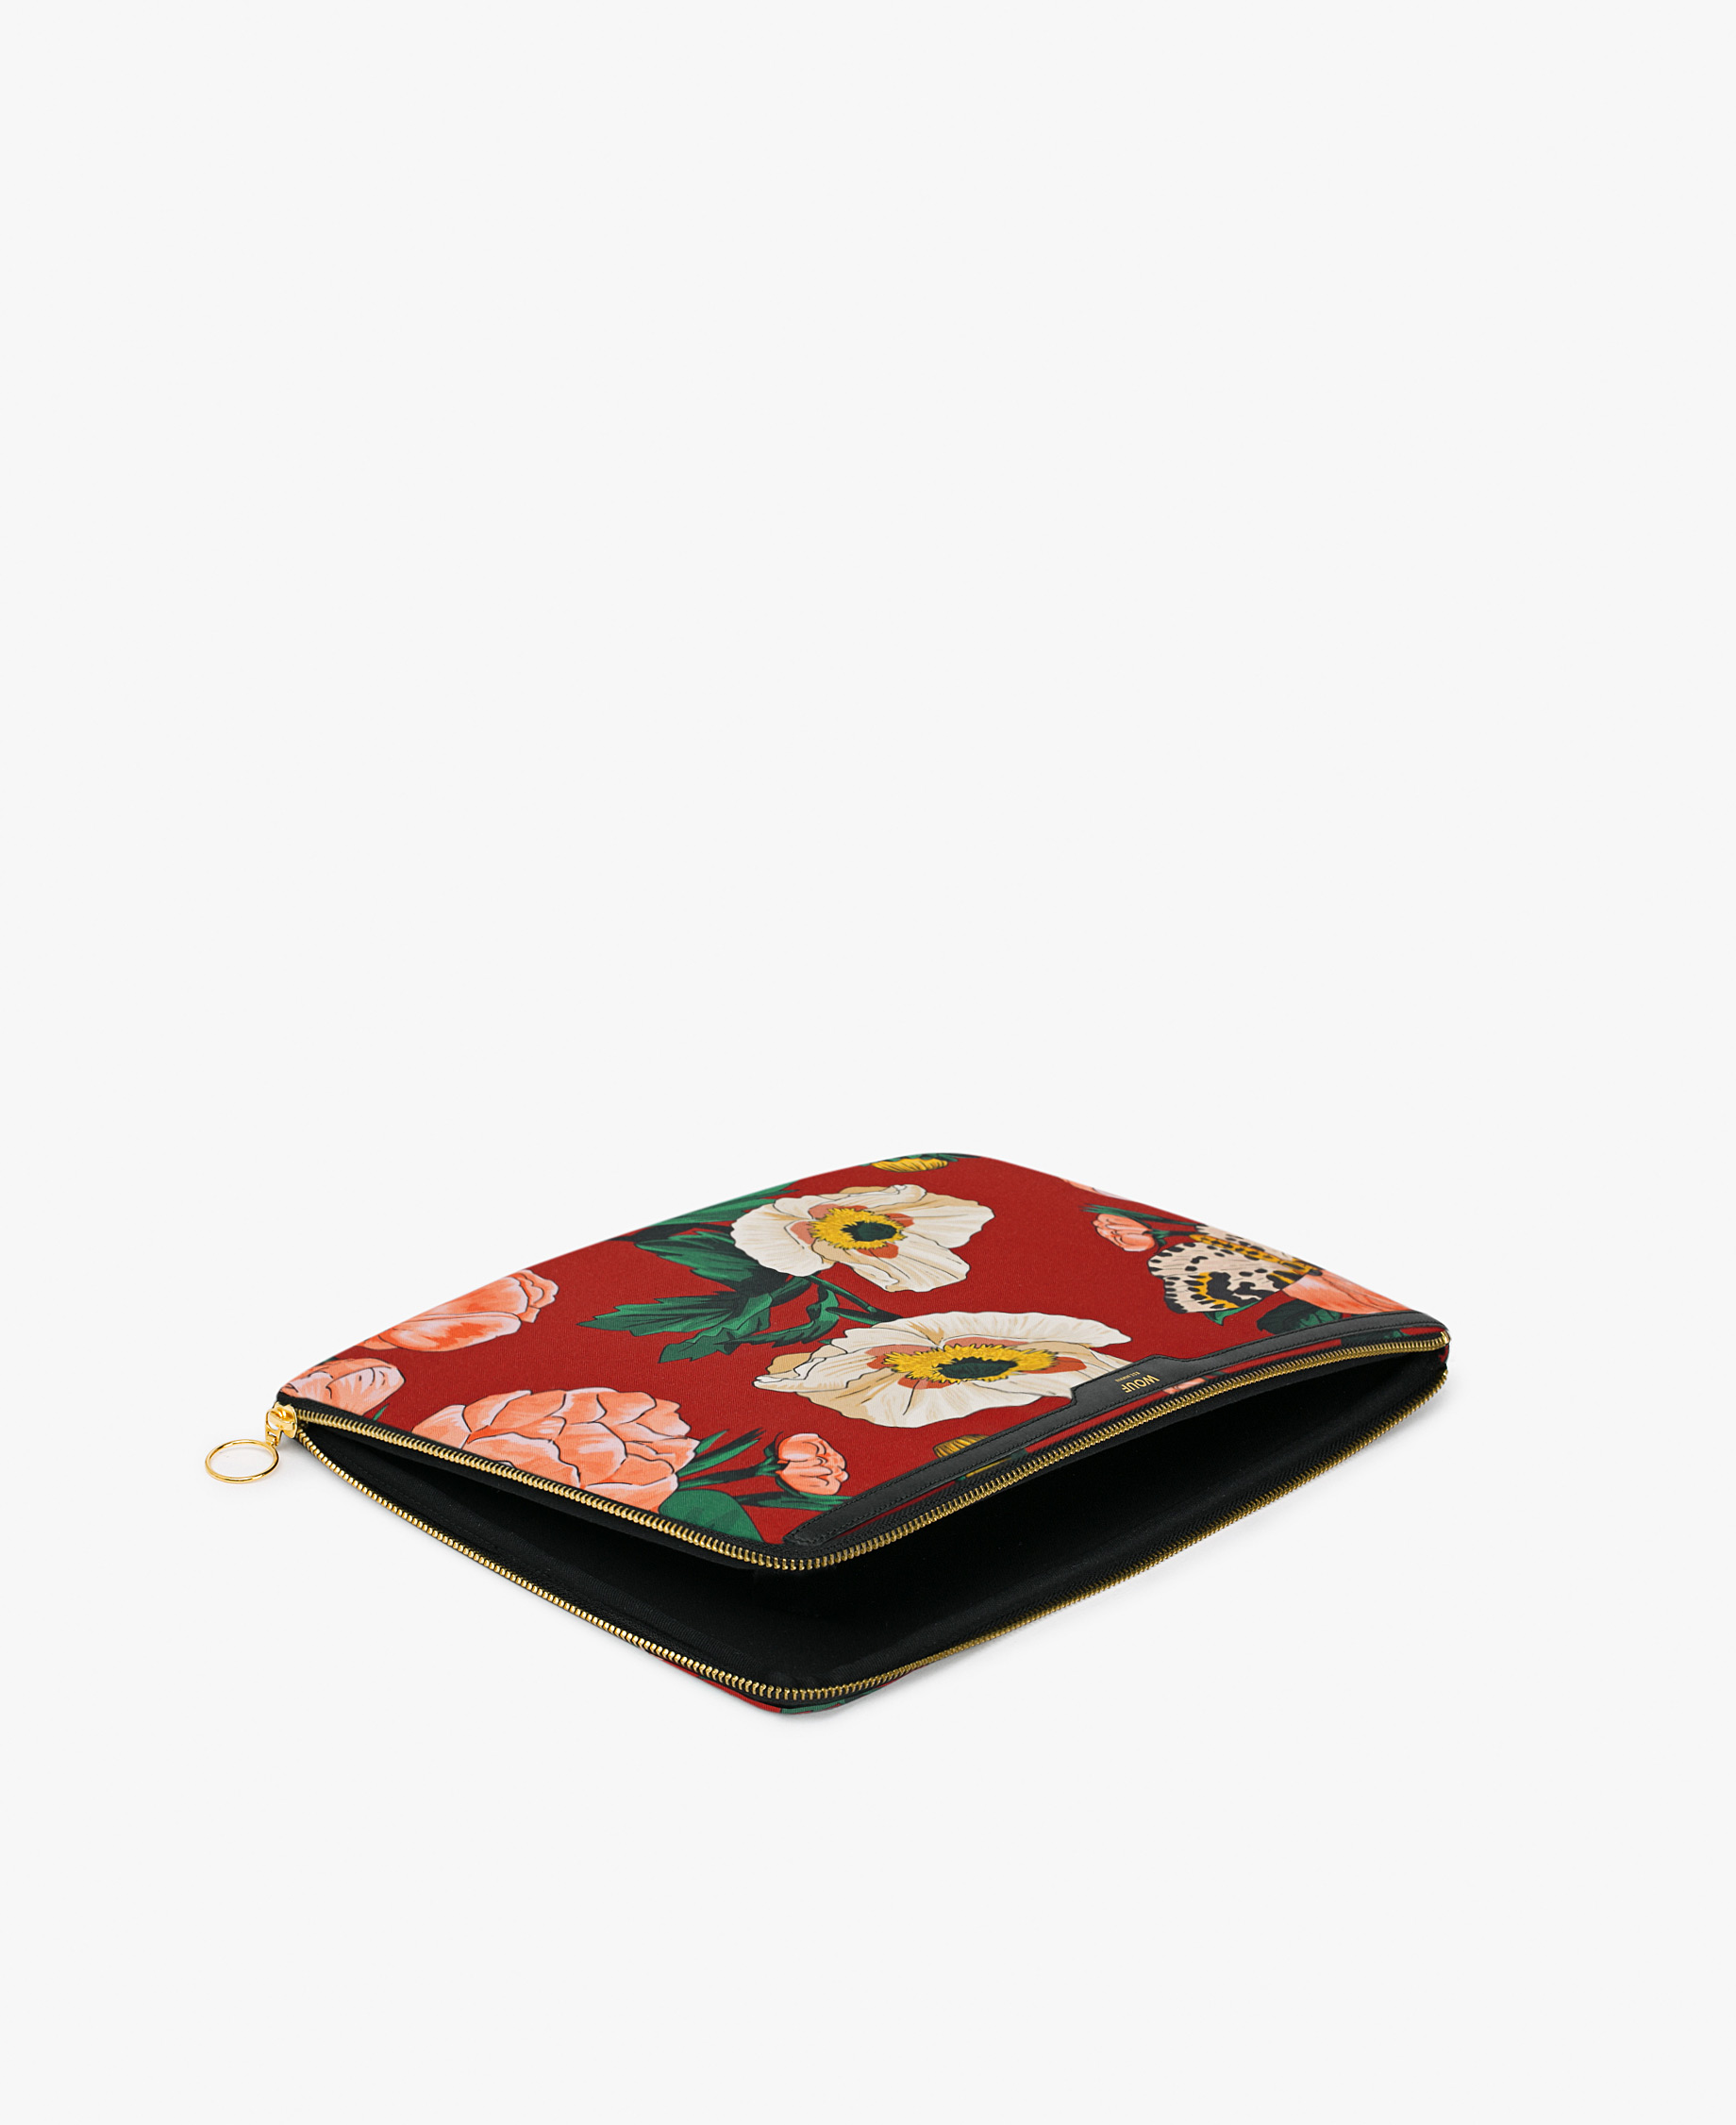 ipad case with a cheerful design